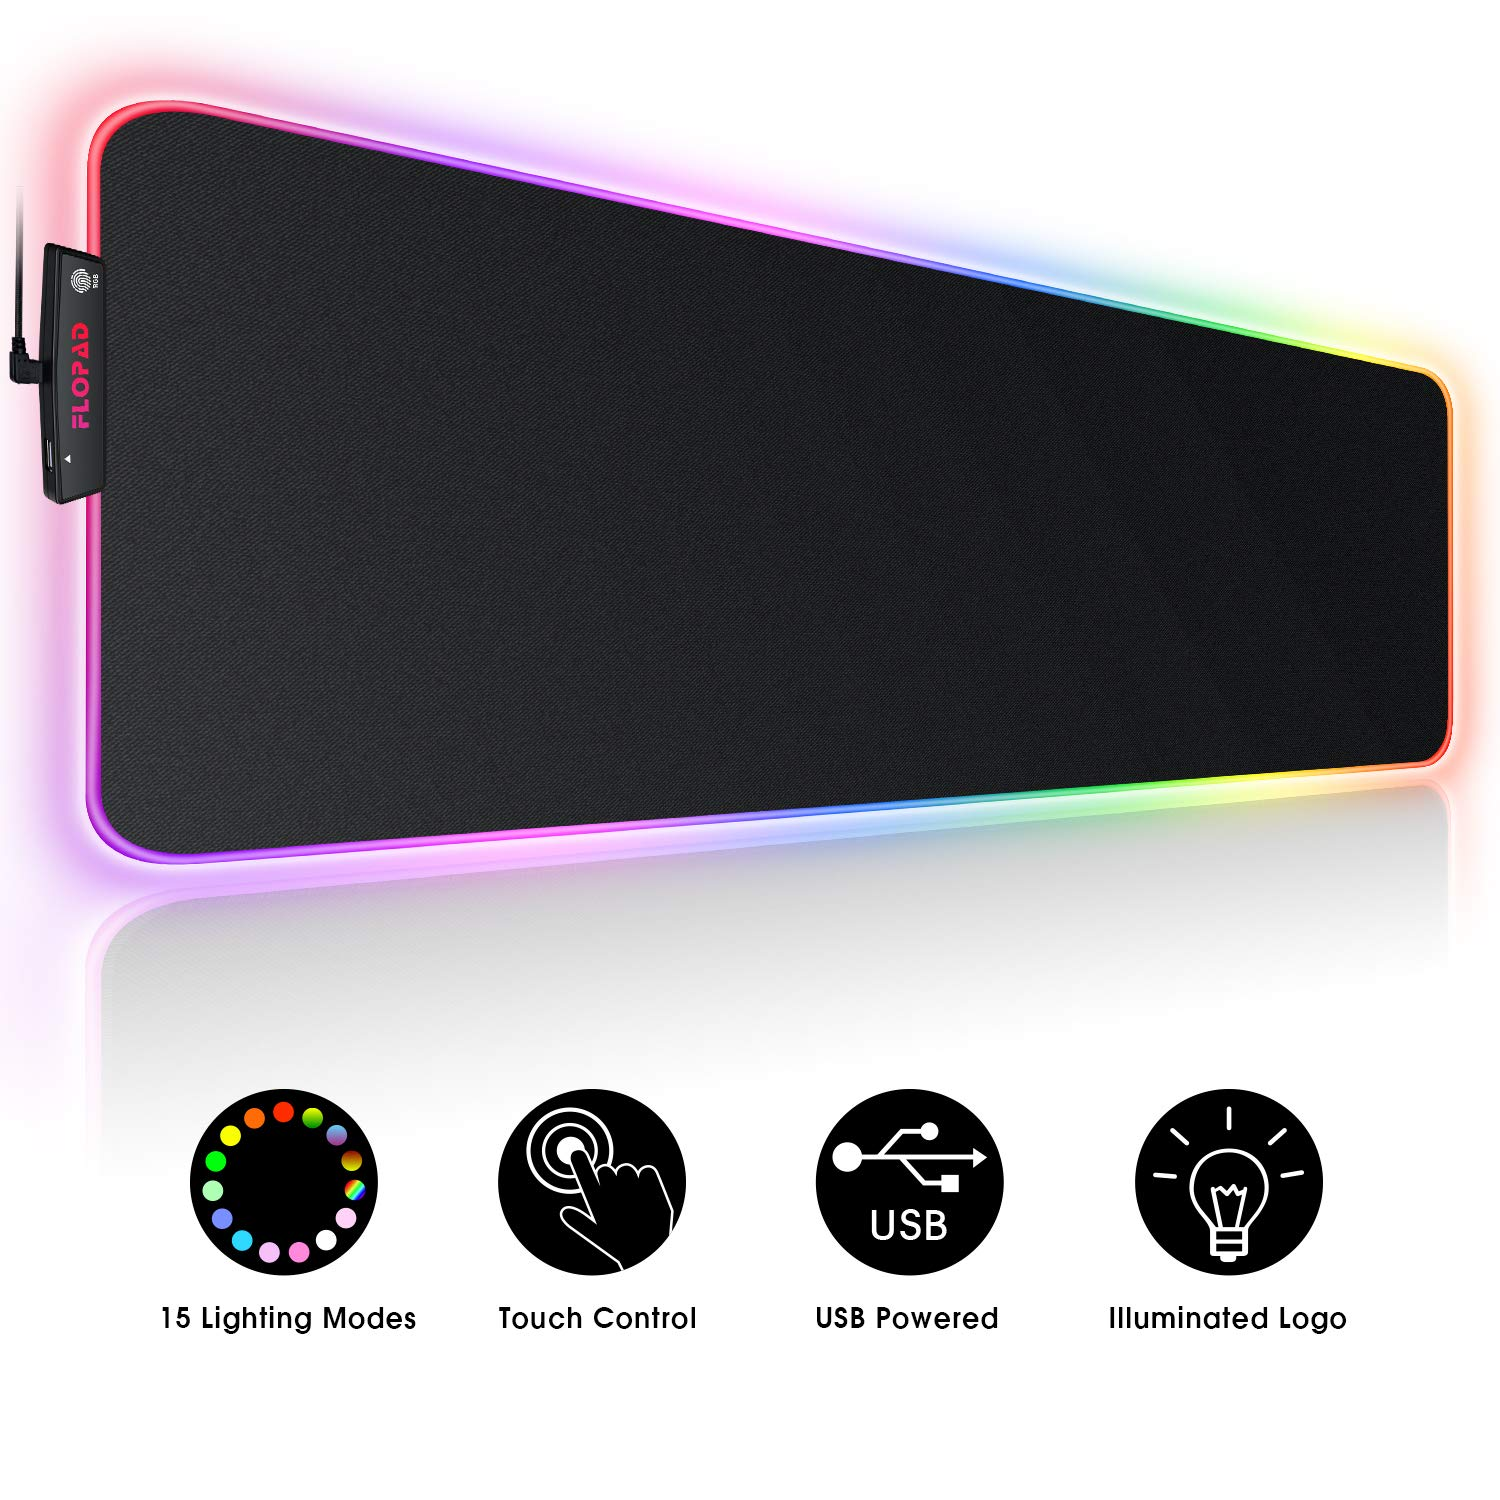 Large RGB Gaming Mouse Pad - 15 Light Modes Touch Control Extended Soft Computer Keyboard Mat, Durable Stitched Edges and Non-Slip Rubber Base for Gamer, Esports Pros, Office Working 31.5X11.8in by FLOPAD